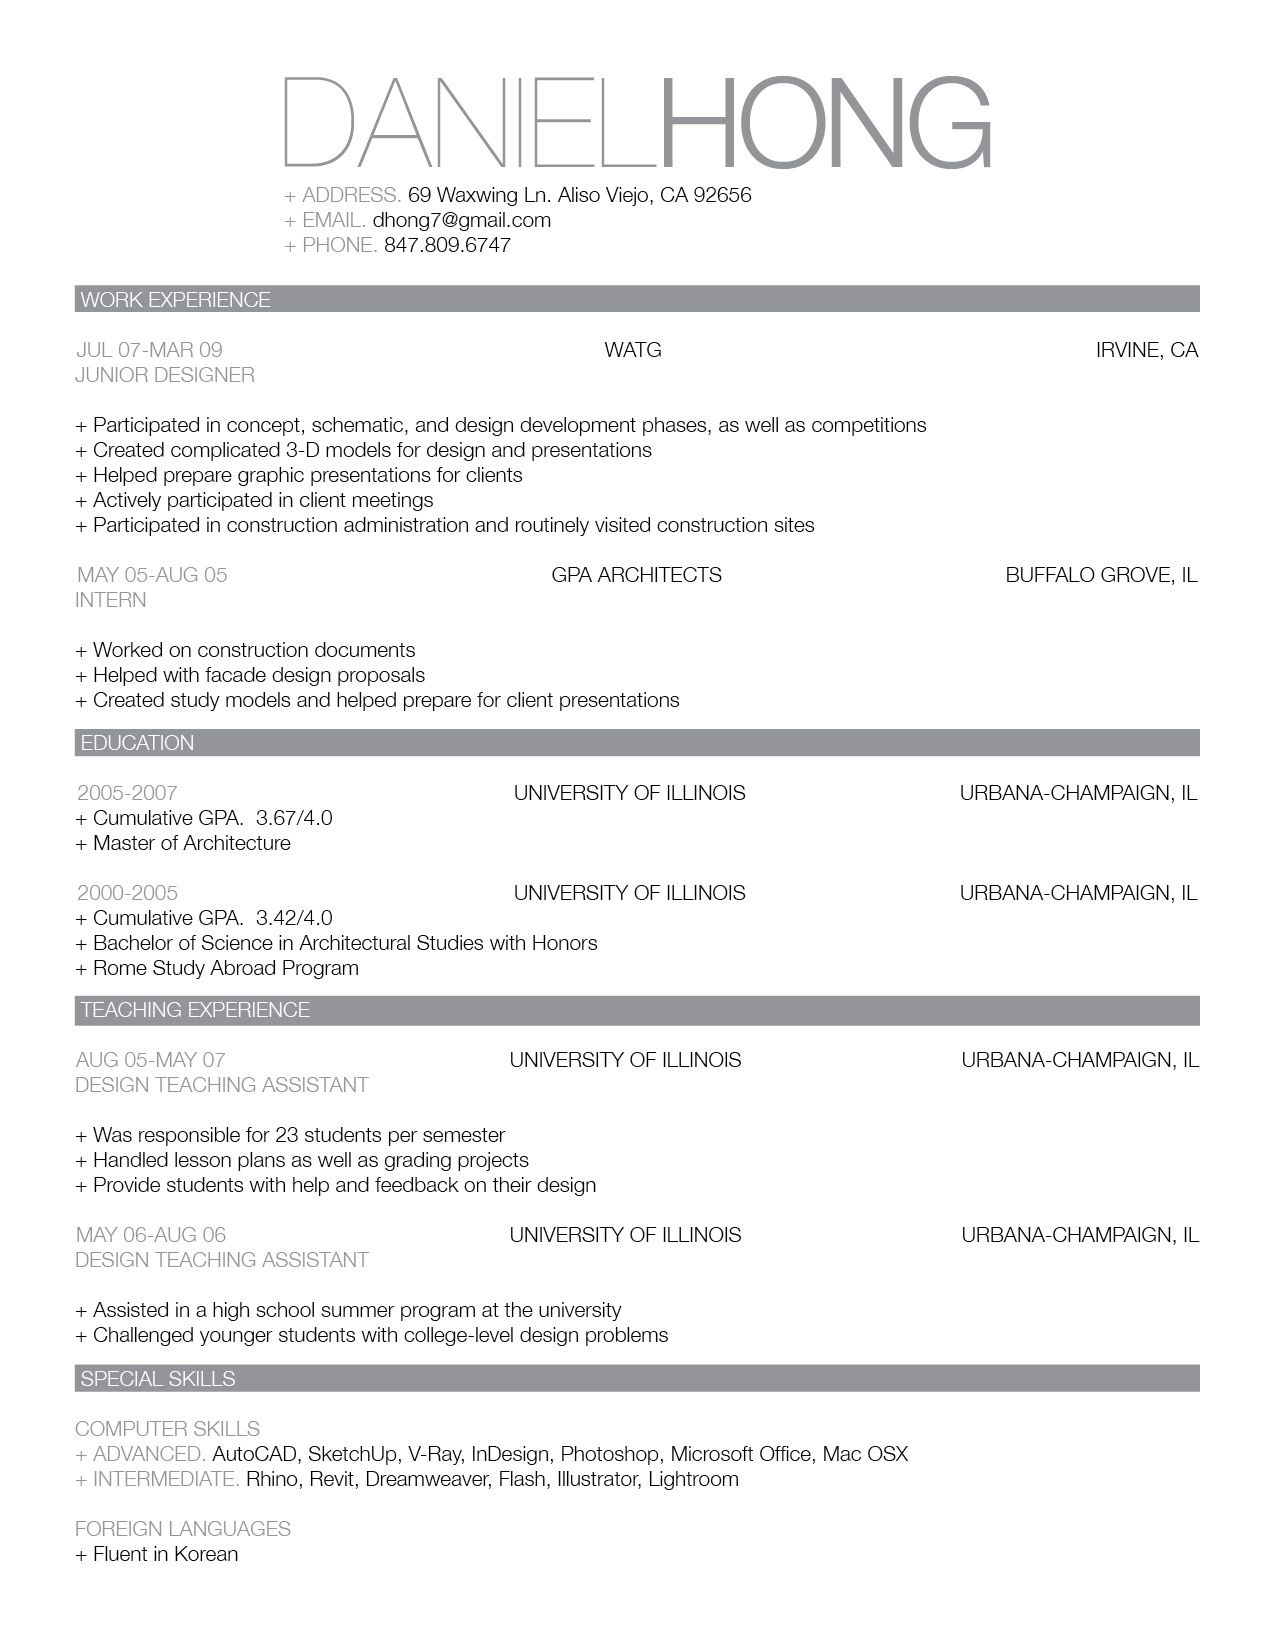 Resume Format Template Endearing Updated Cv And Work Sample  Professional Resume Sample Resume